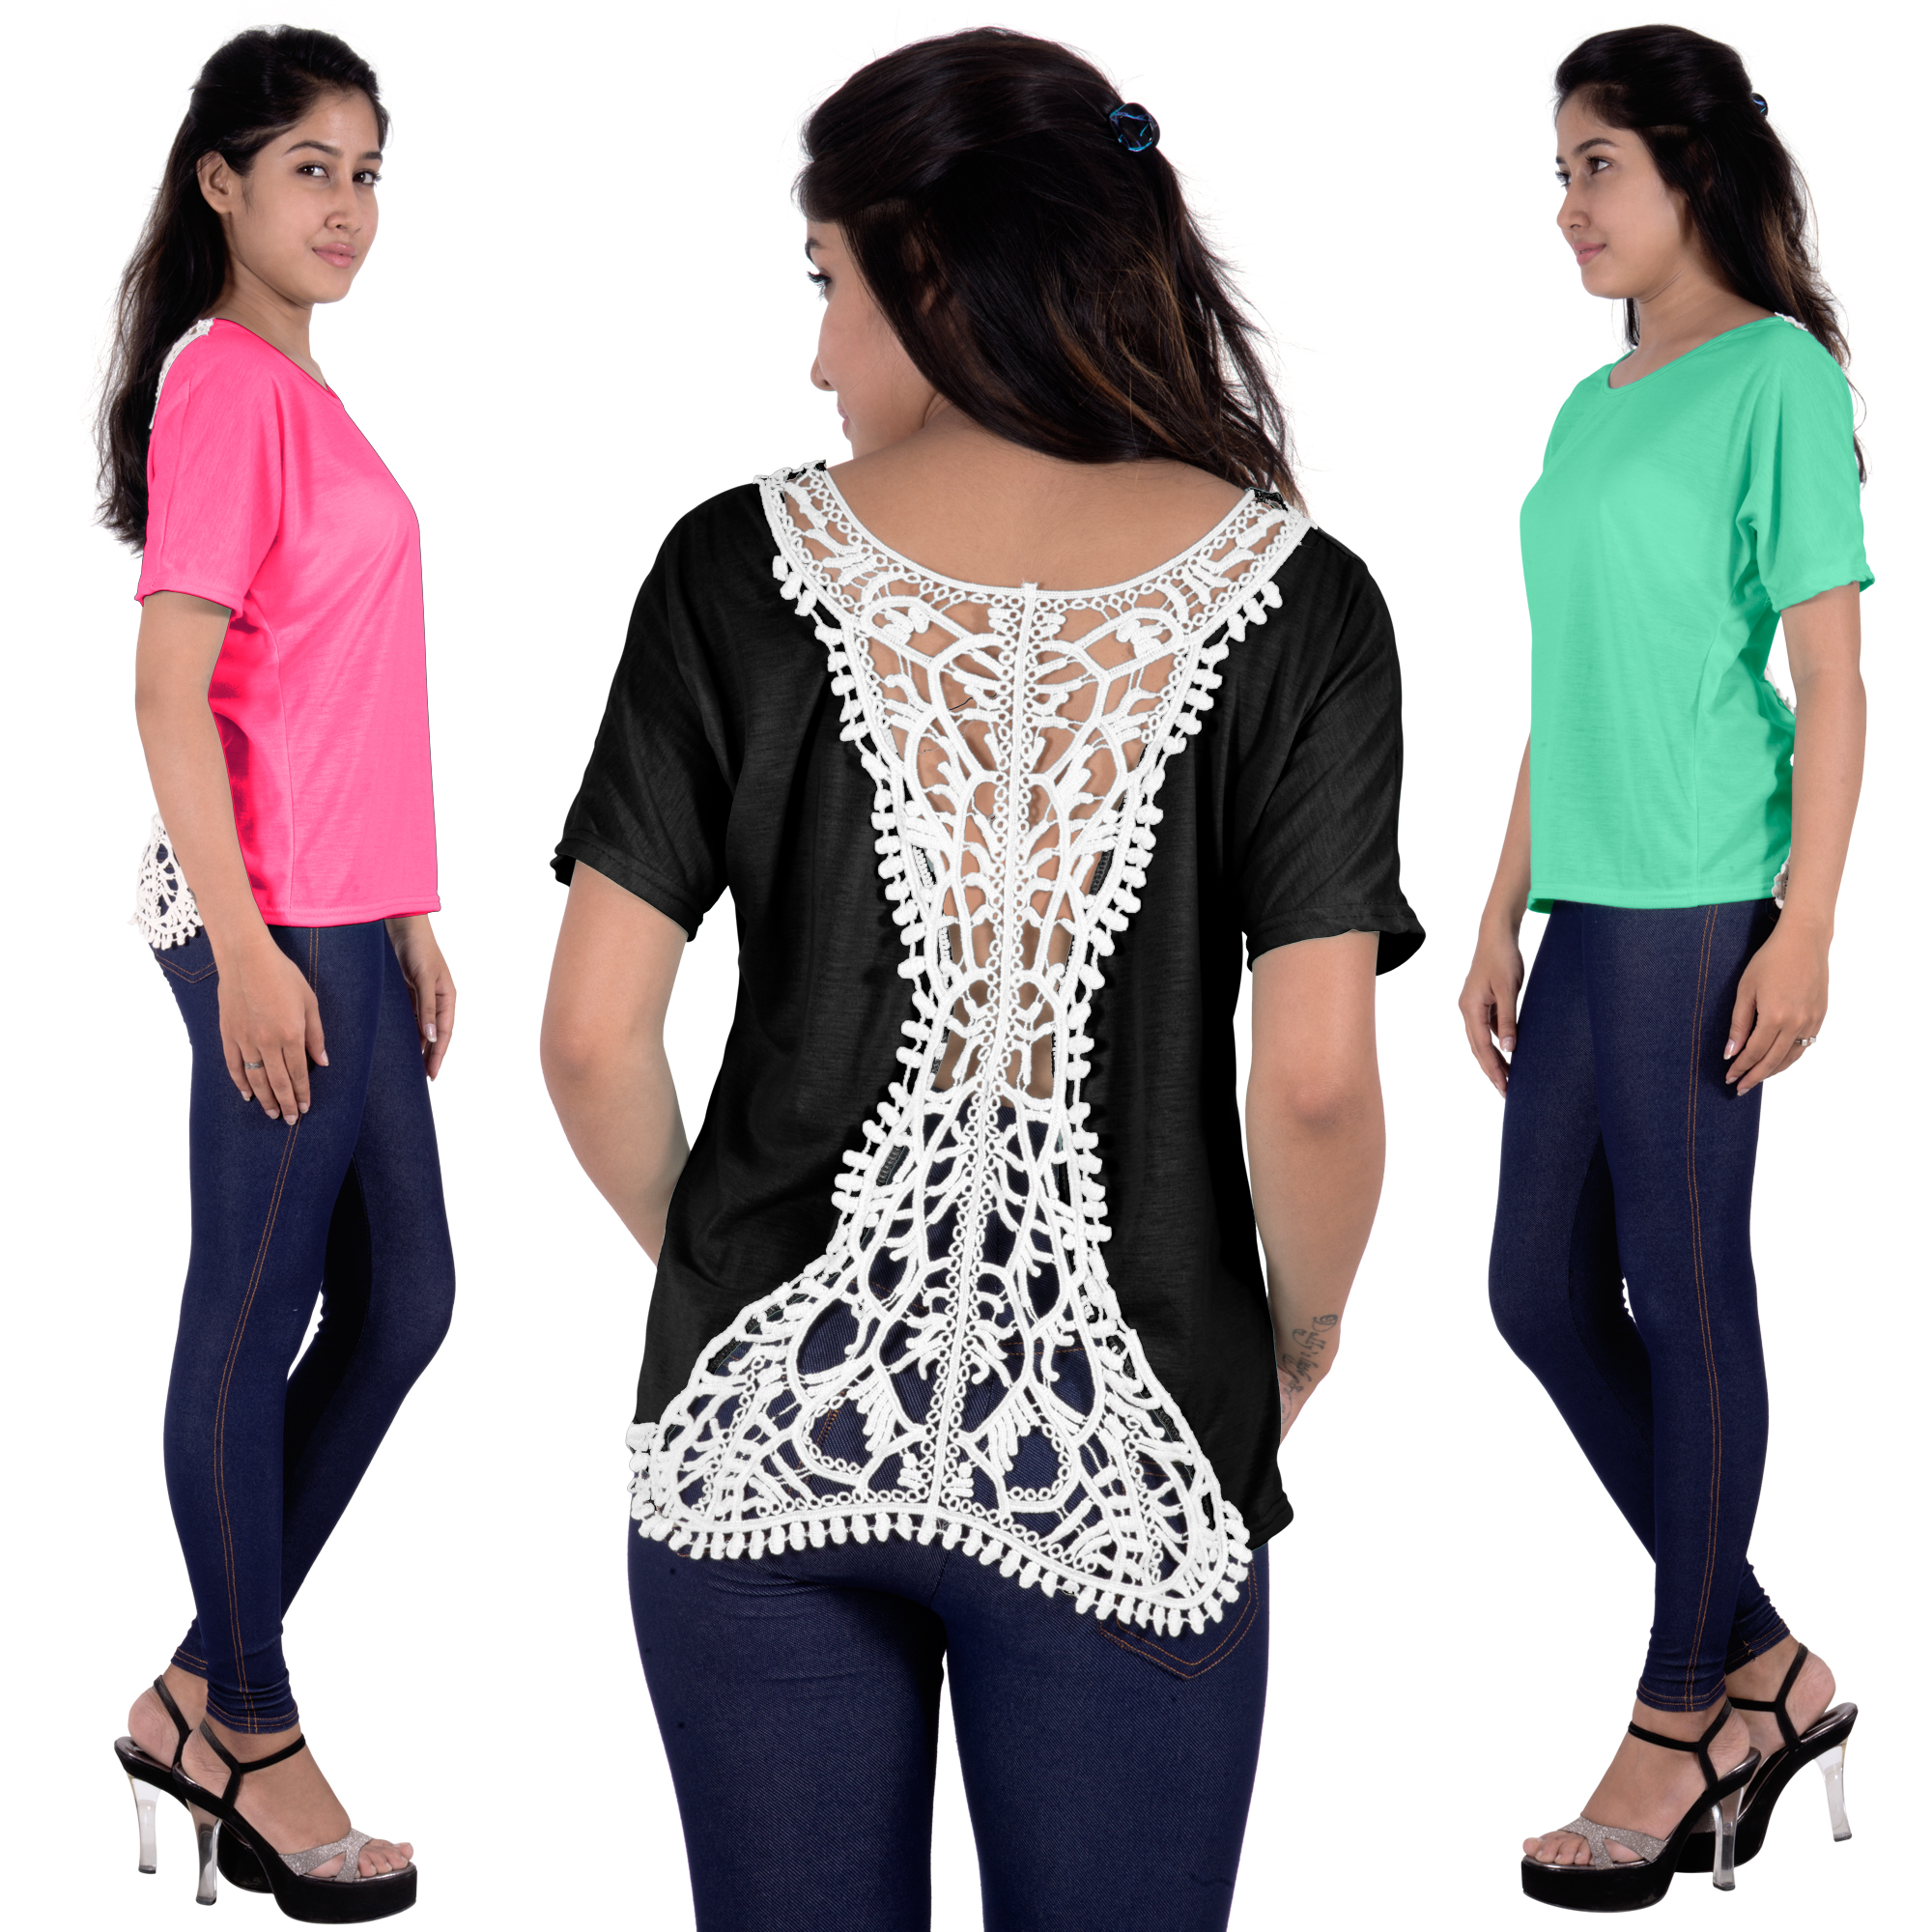 Fashion Womens Summer Vest Tops Short Sleeve Lace Blouse Casual Tops T-Shirt BLACK